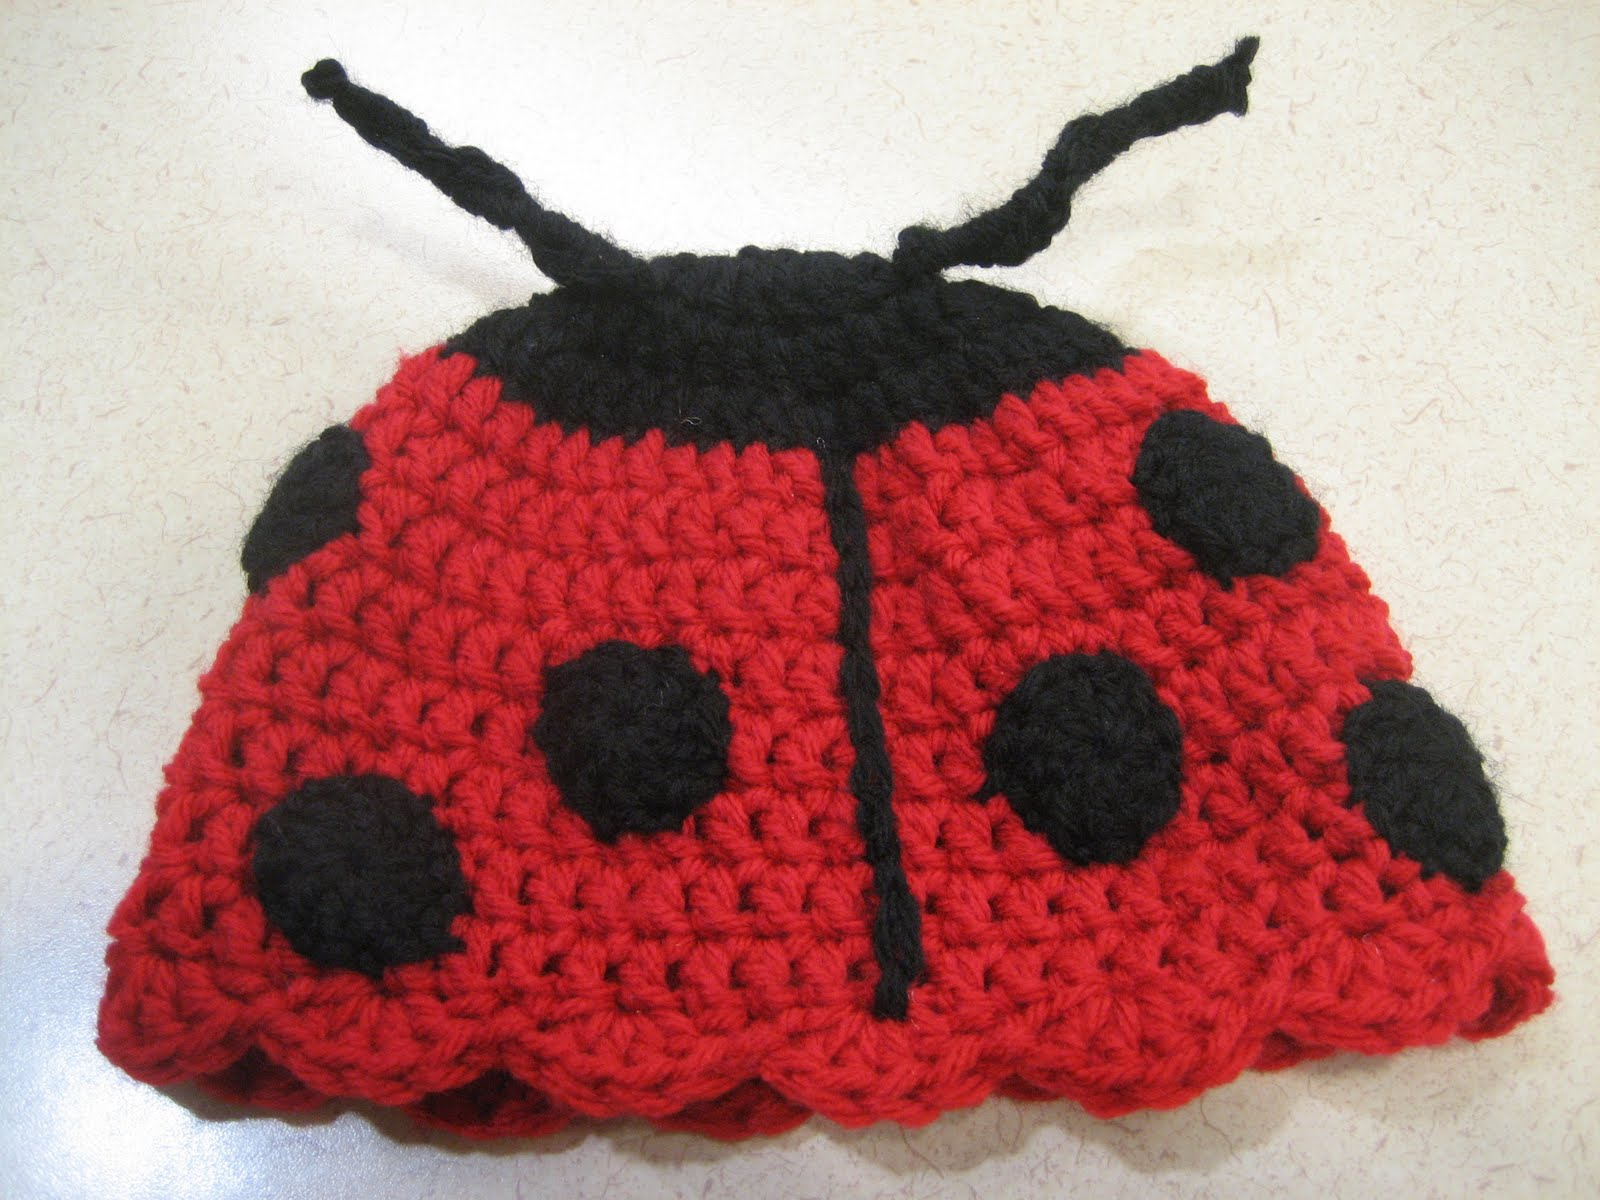 Download Crochet Patterns, Ladybug Wristlet Purse Free Crochet